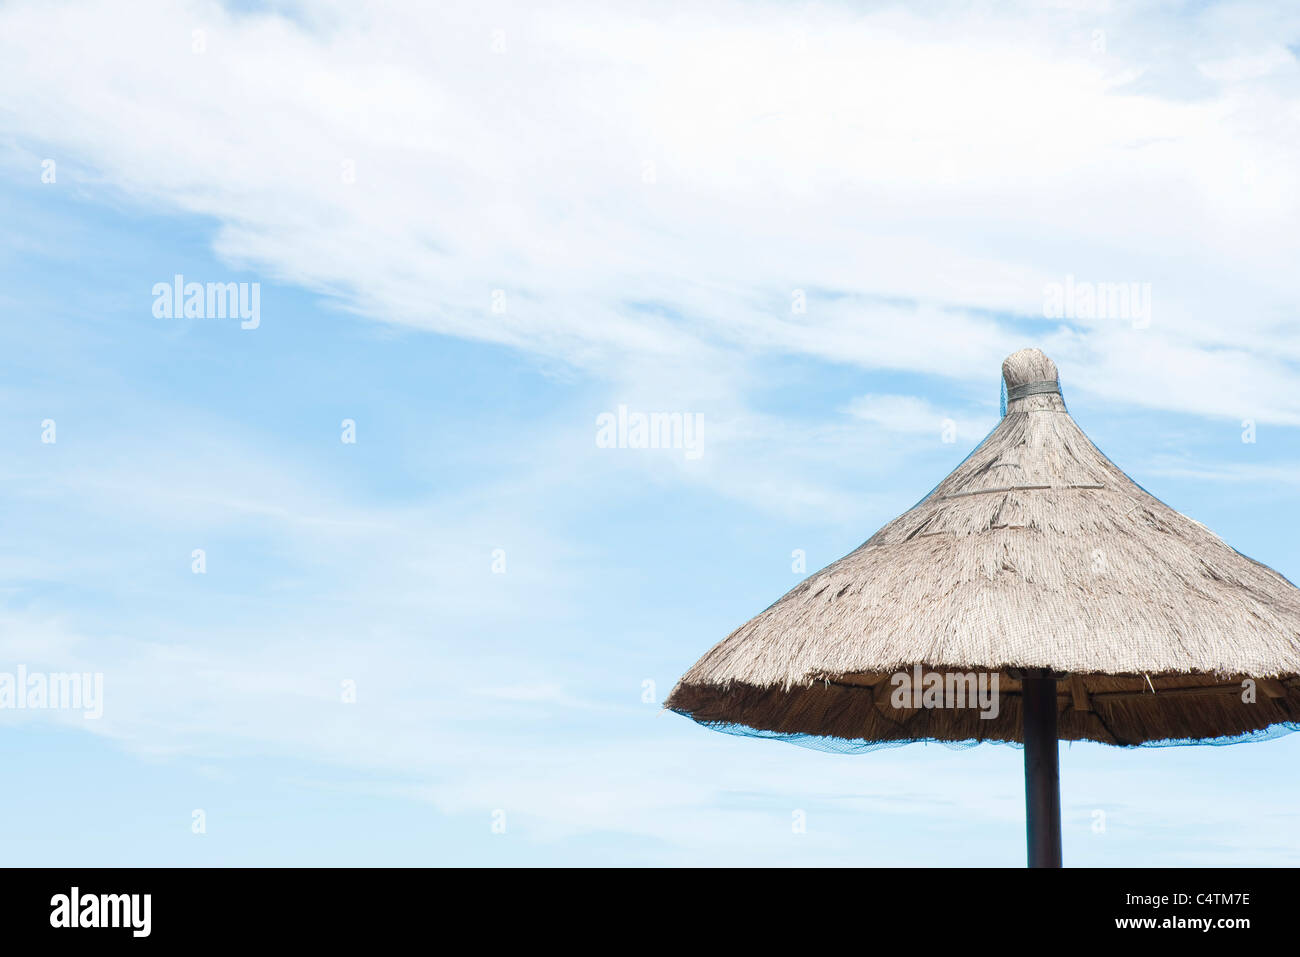 Thatched parasol - Stock Image